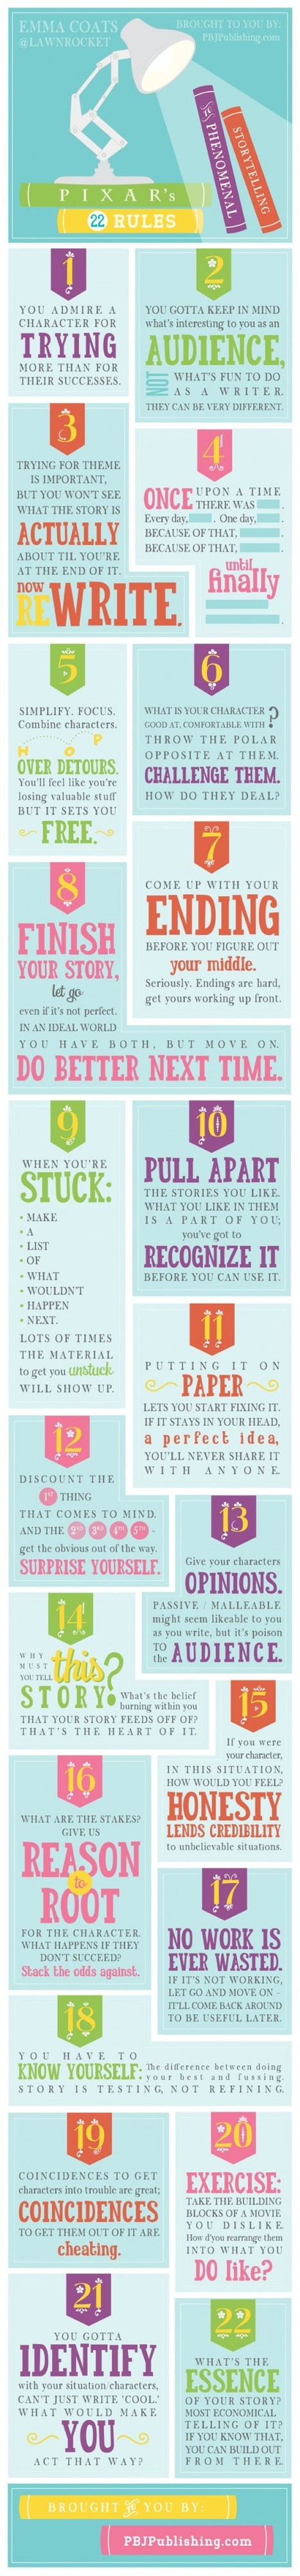 Pixar's 22 Rules to Phenomenal Storytelling [INFOGRAPHIC] | Social Media, Transmedia Storytelling & Multiplatform | Scoop.it